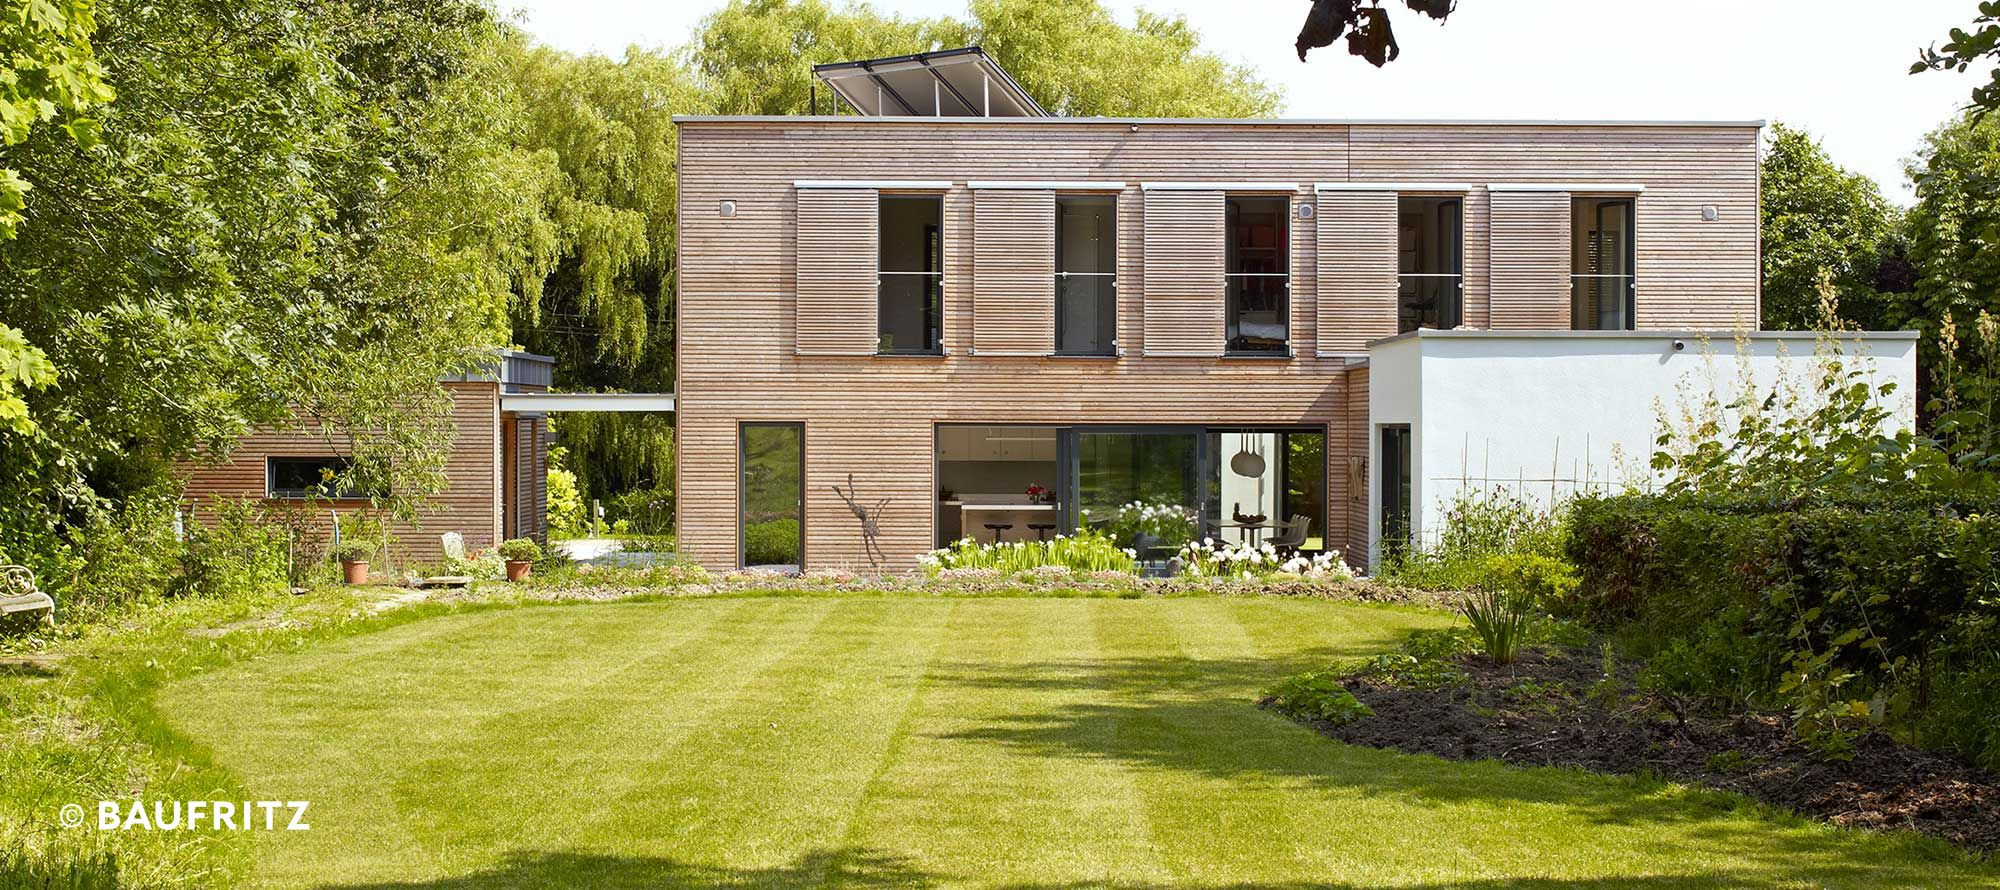 Design Your Own Prefab Home Uk House Style Ideas